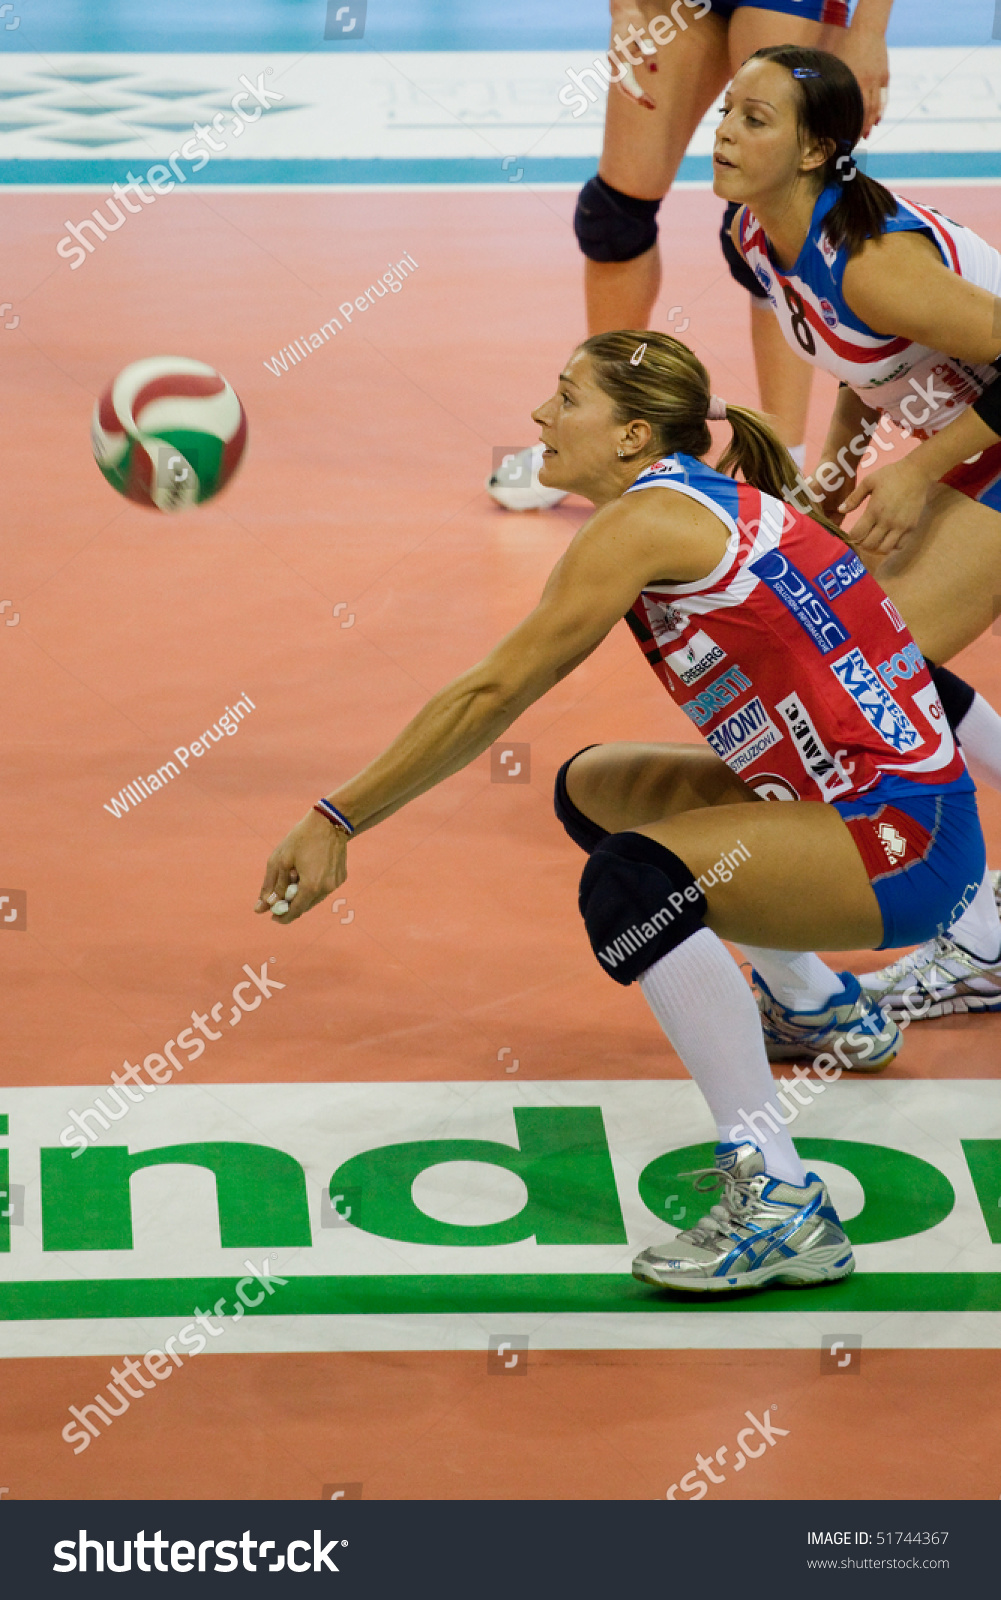 Volleyball player francesca piccinini opinion you